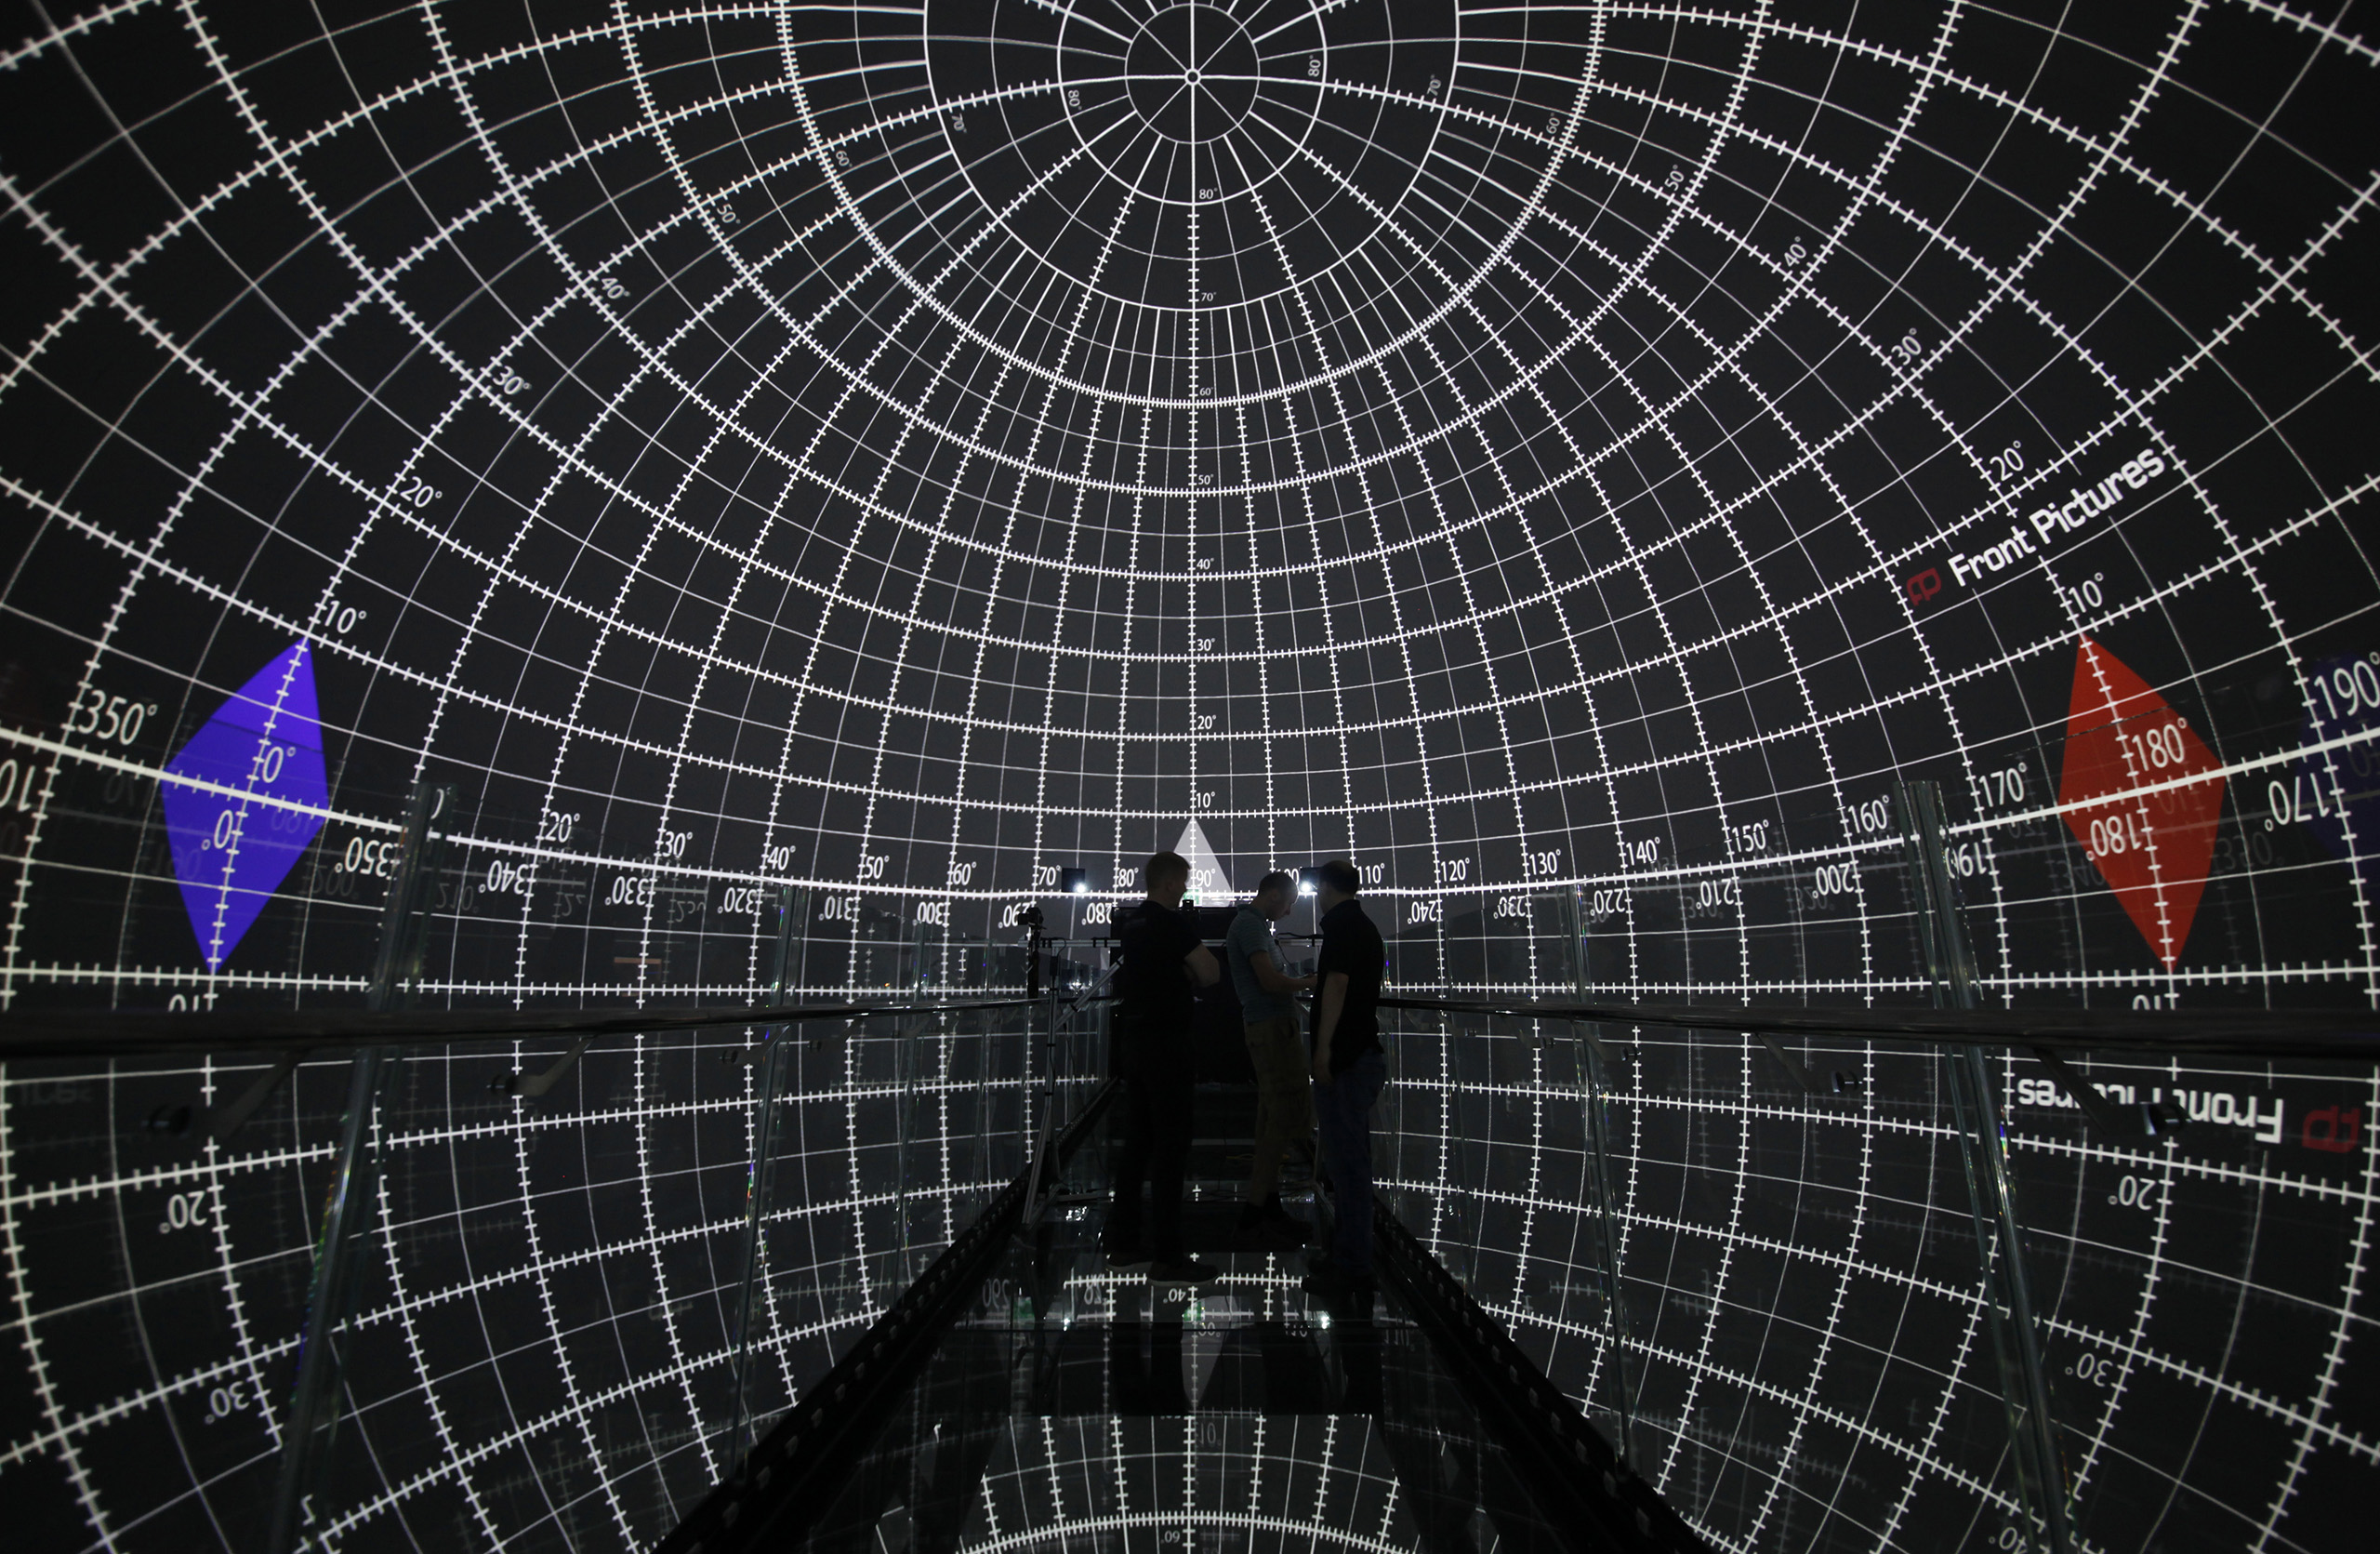 Front-Pictures-Screenberry-Space360-Spherical-Projection-Theater-Calibration-2560px-MG_7886.jpg